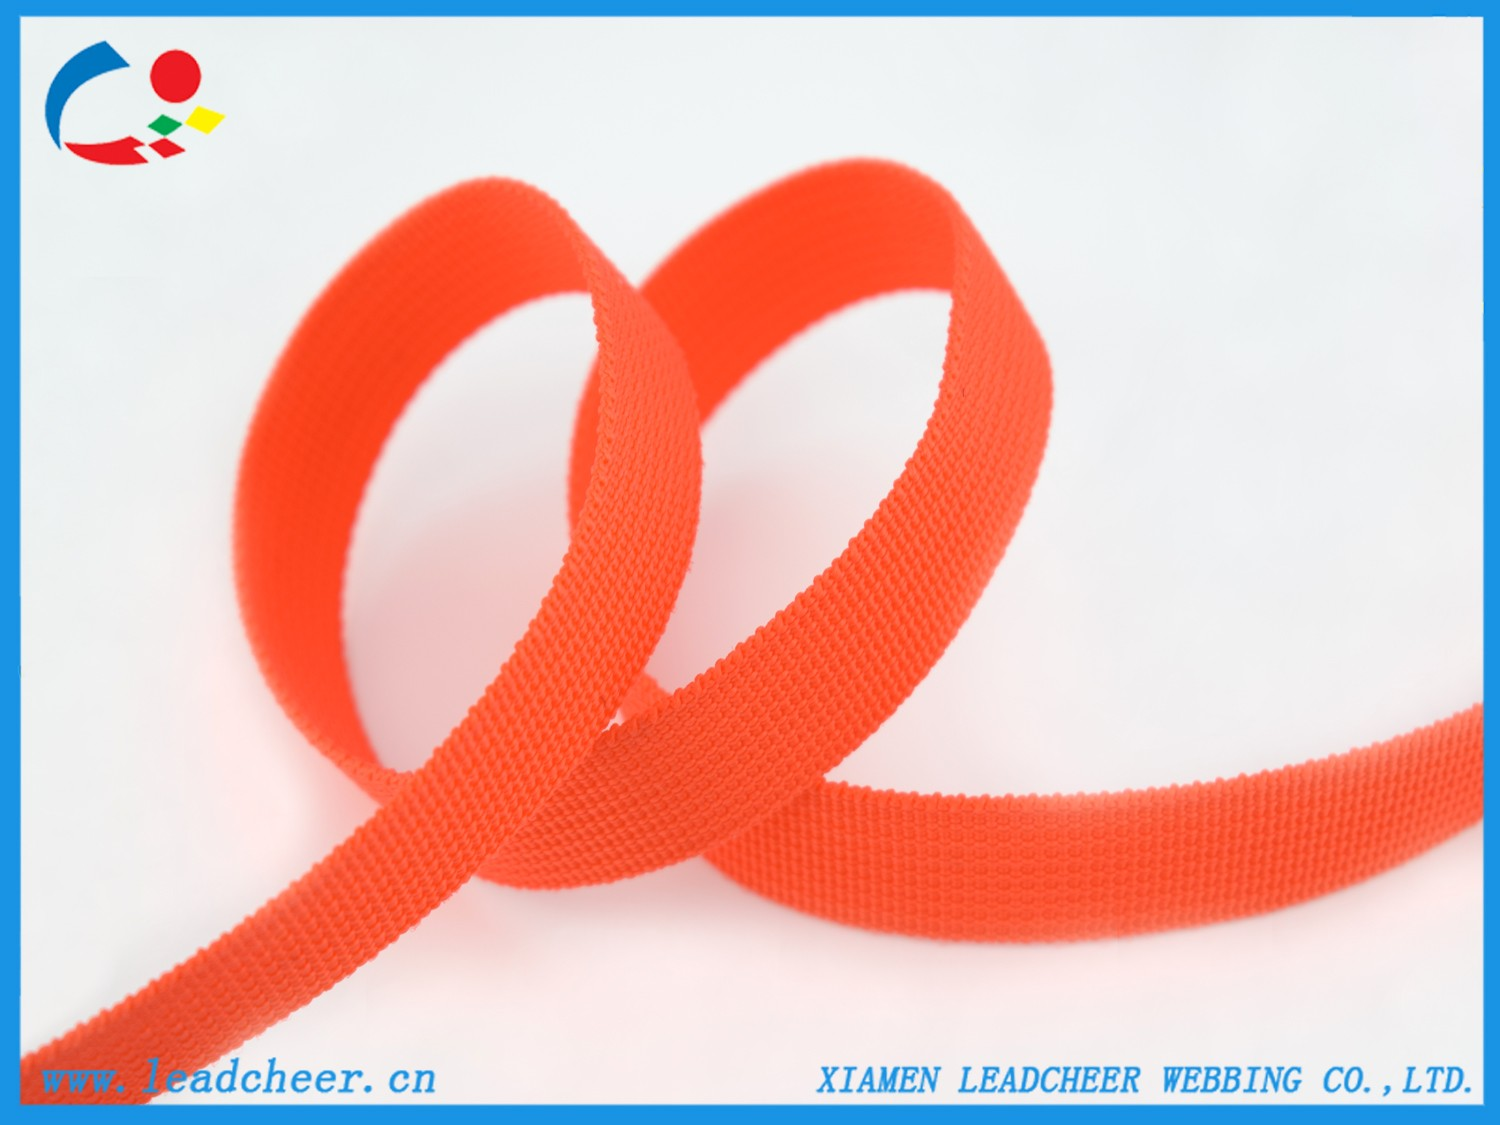 High quality Eco-Friendly PP Webbing for Dog Collars and Leashes Quotes,China Eco-Friendly PP Webbing for Dog Collars and Leashes Factory,Eco-Friendly PP Webbing for Dog Collars and Leashes Purchasing